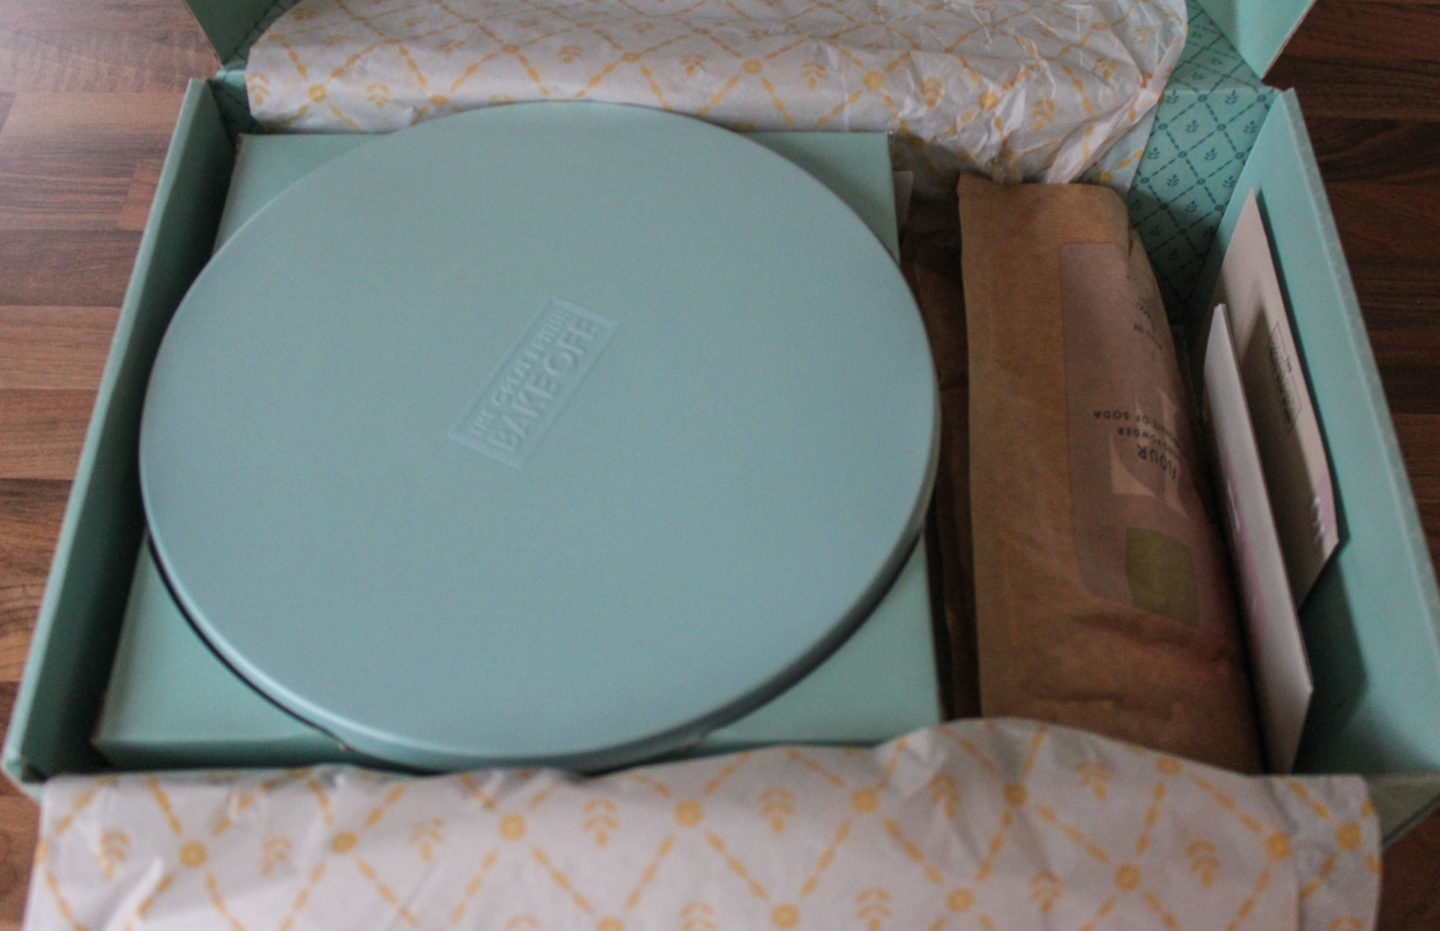 Inside of Bake Off Box showing the cake stand, bags of dry ingredients and recipe card